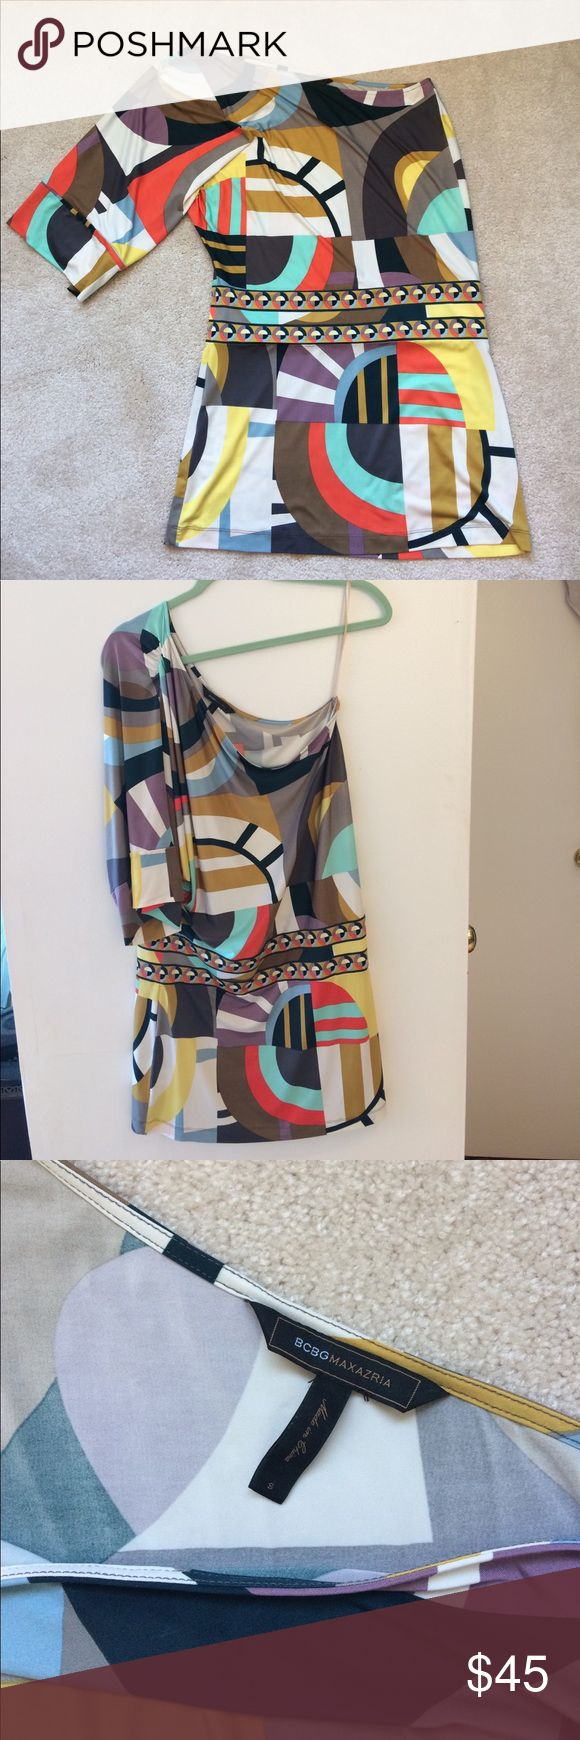 BCBG one shoulder dress BCBG one-shoulder dress size small. In great condition! Cure flattering cut. Geometric patterns. Great for a night out or wedding! BCBG Dresses Midi